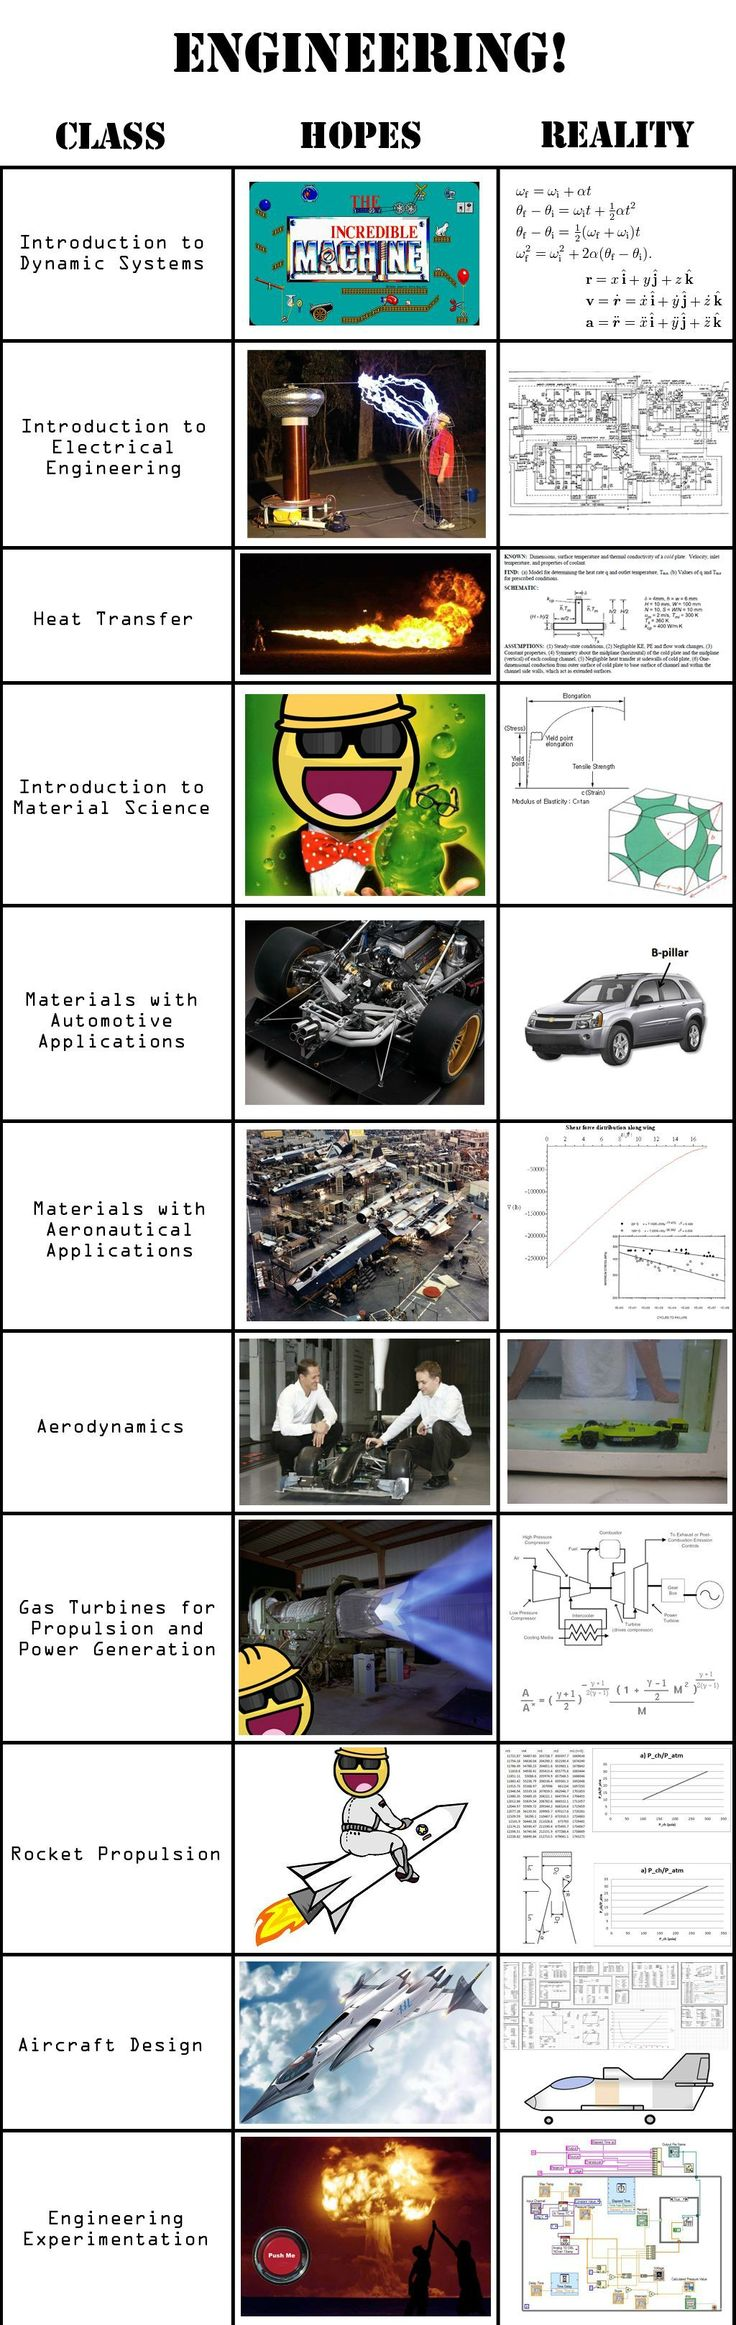 Engineering expectations vs reality humor. To increase interest in STEM, the industry needs to meet student's expectations. :)